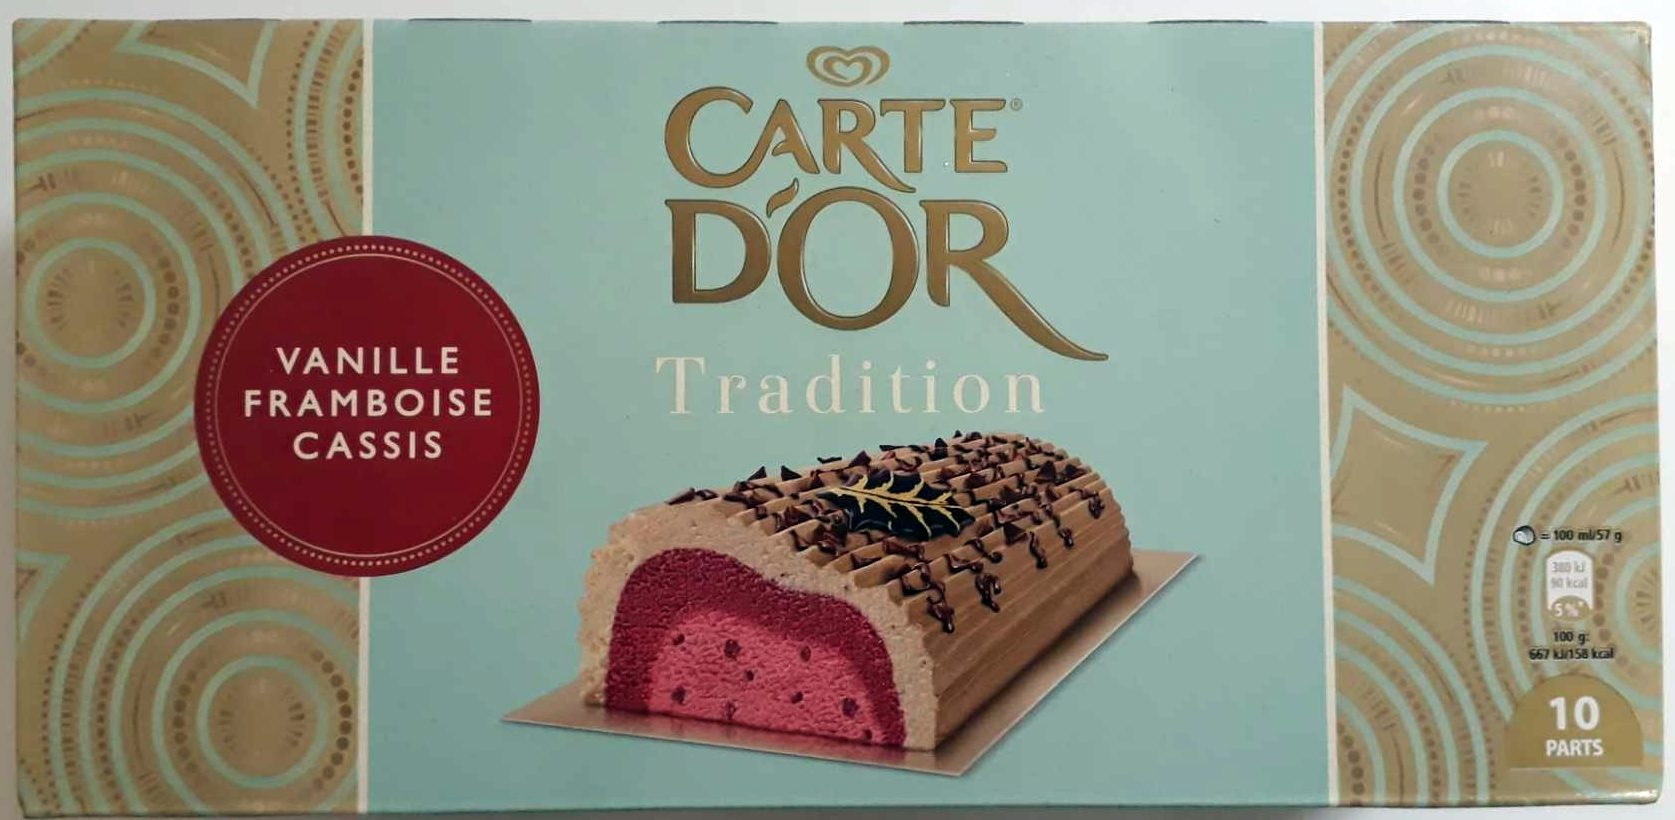 Bûche Tradition, vanille framboise cassis - Product